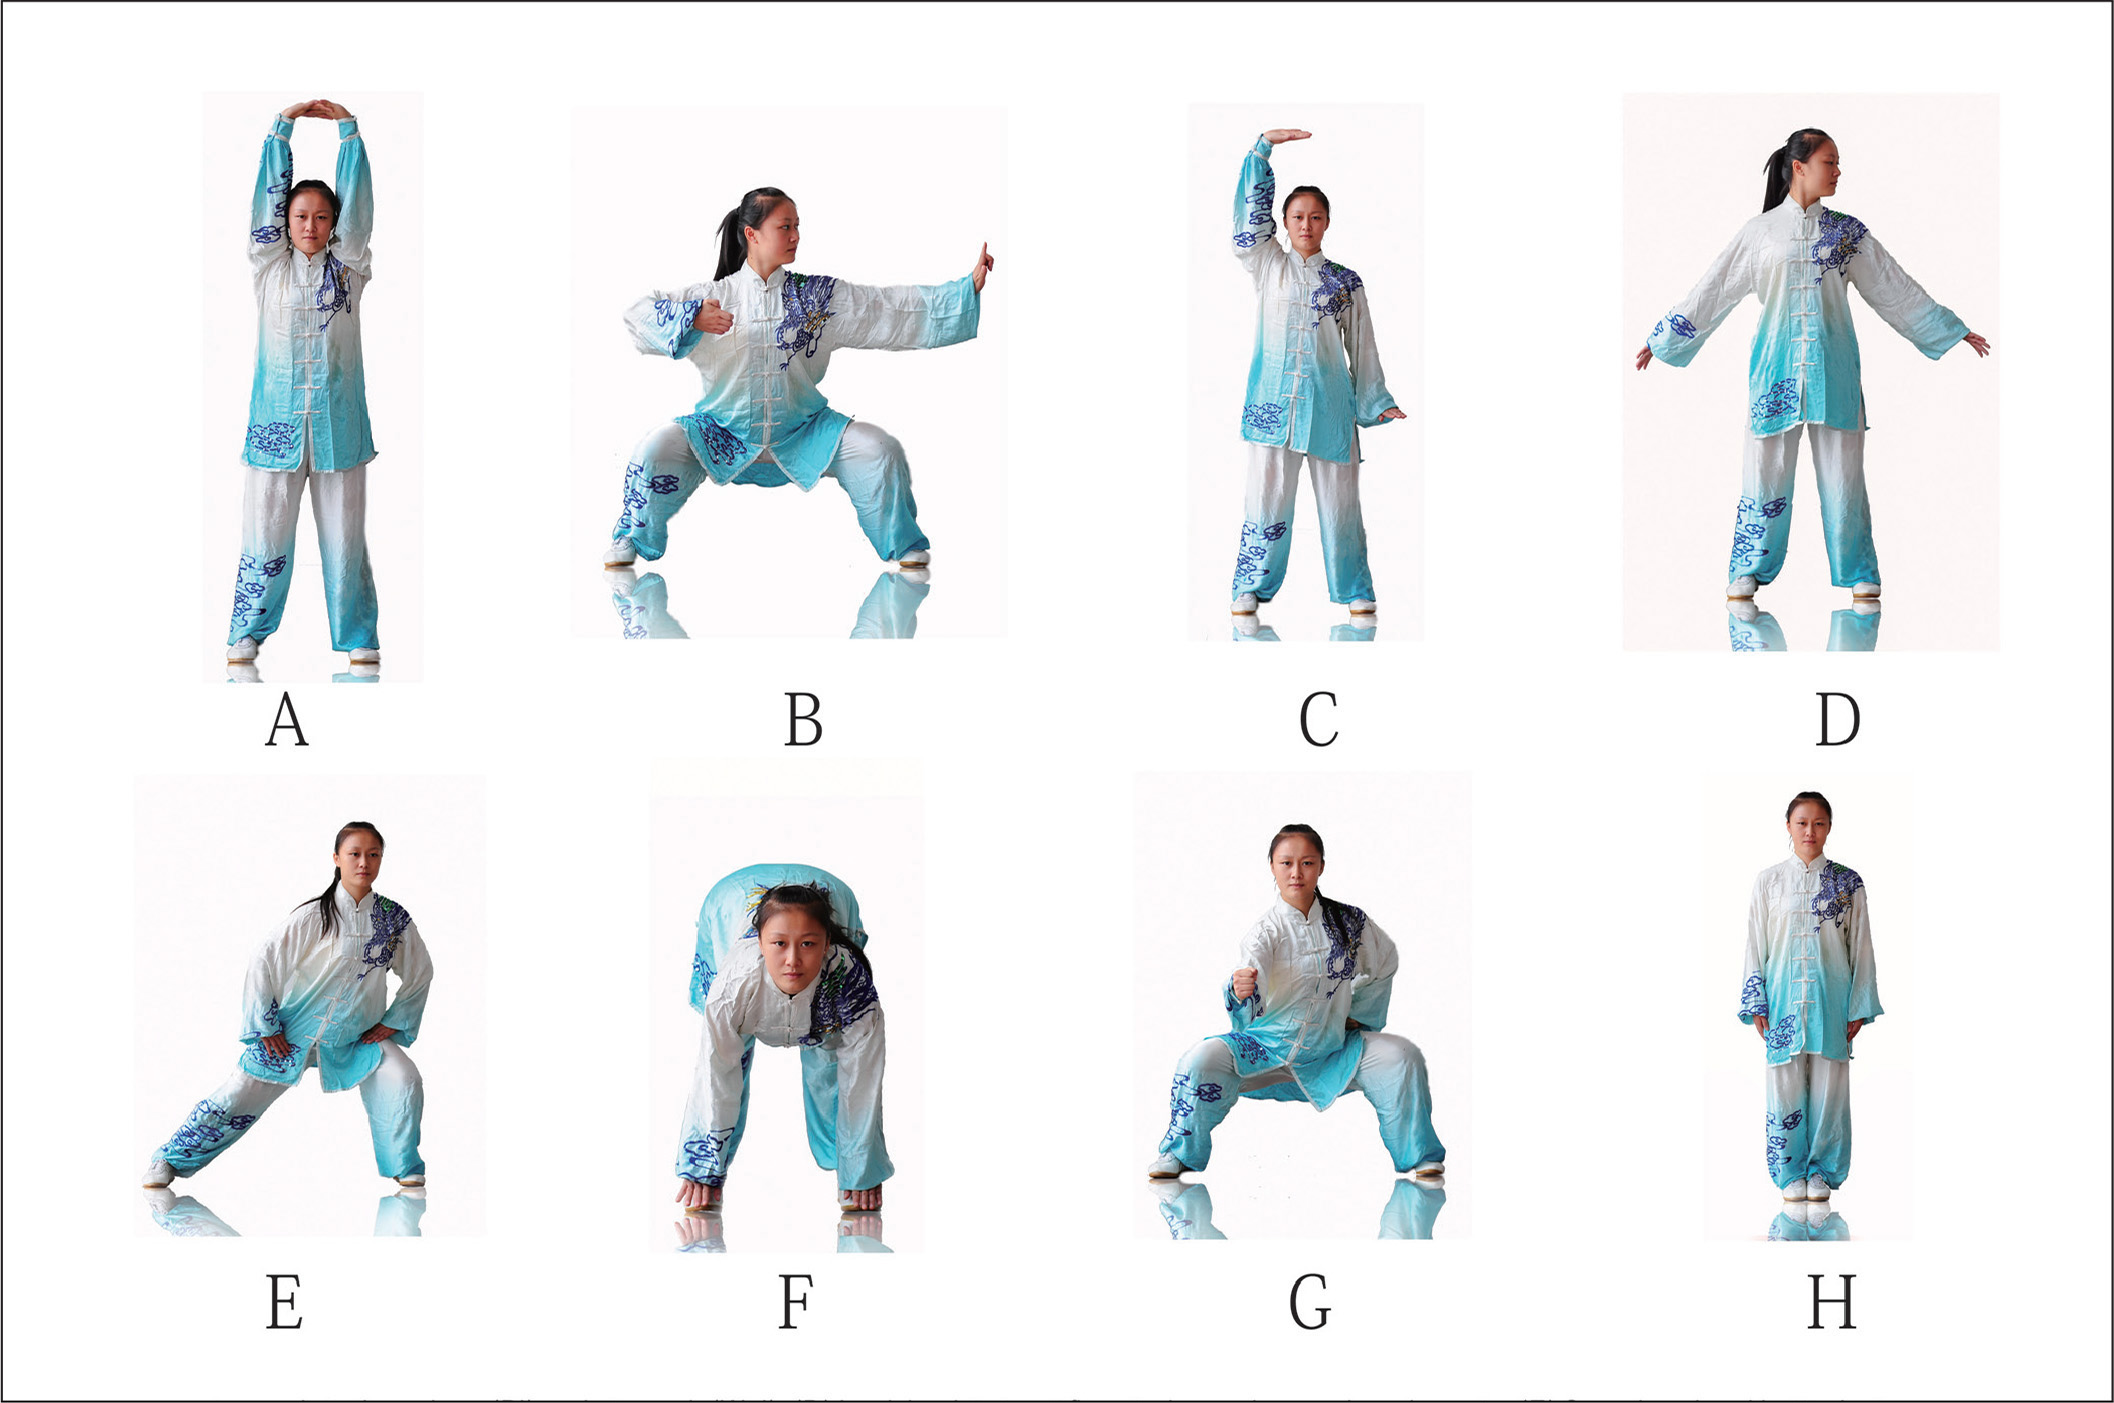 Ba Duan Jin exercise program. (A) Prop up the sky with hands to regulate the triple energizer. (B) Draw a bow on both sides, like shooting a vulture. (C) Raise single arm to regulate spleen (Pi) and stomach (Wei). (D) Look back to treat five strains and seven impairments. (E) Sway head and buttocks to expel heart (Xin)-fire. (F) Pull toes with both hands to reinforce the kidney (Shen) and waist. (G) Clench fists and look with eyes wide open to enhance strength and stamina. (H) Rise and fall on tip toes to prevent all diseases.